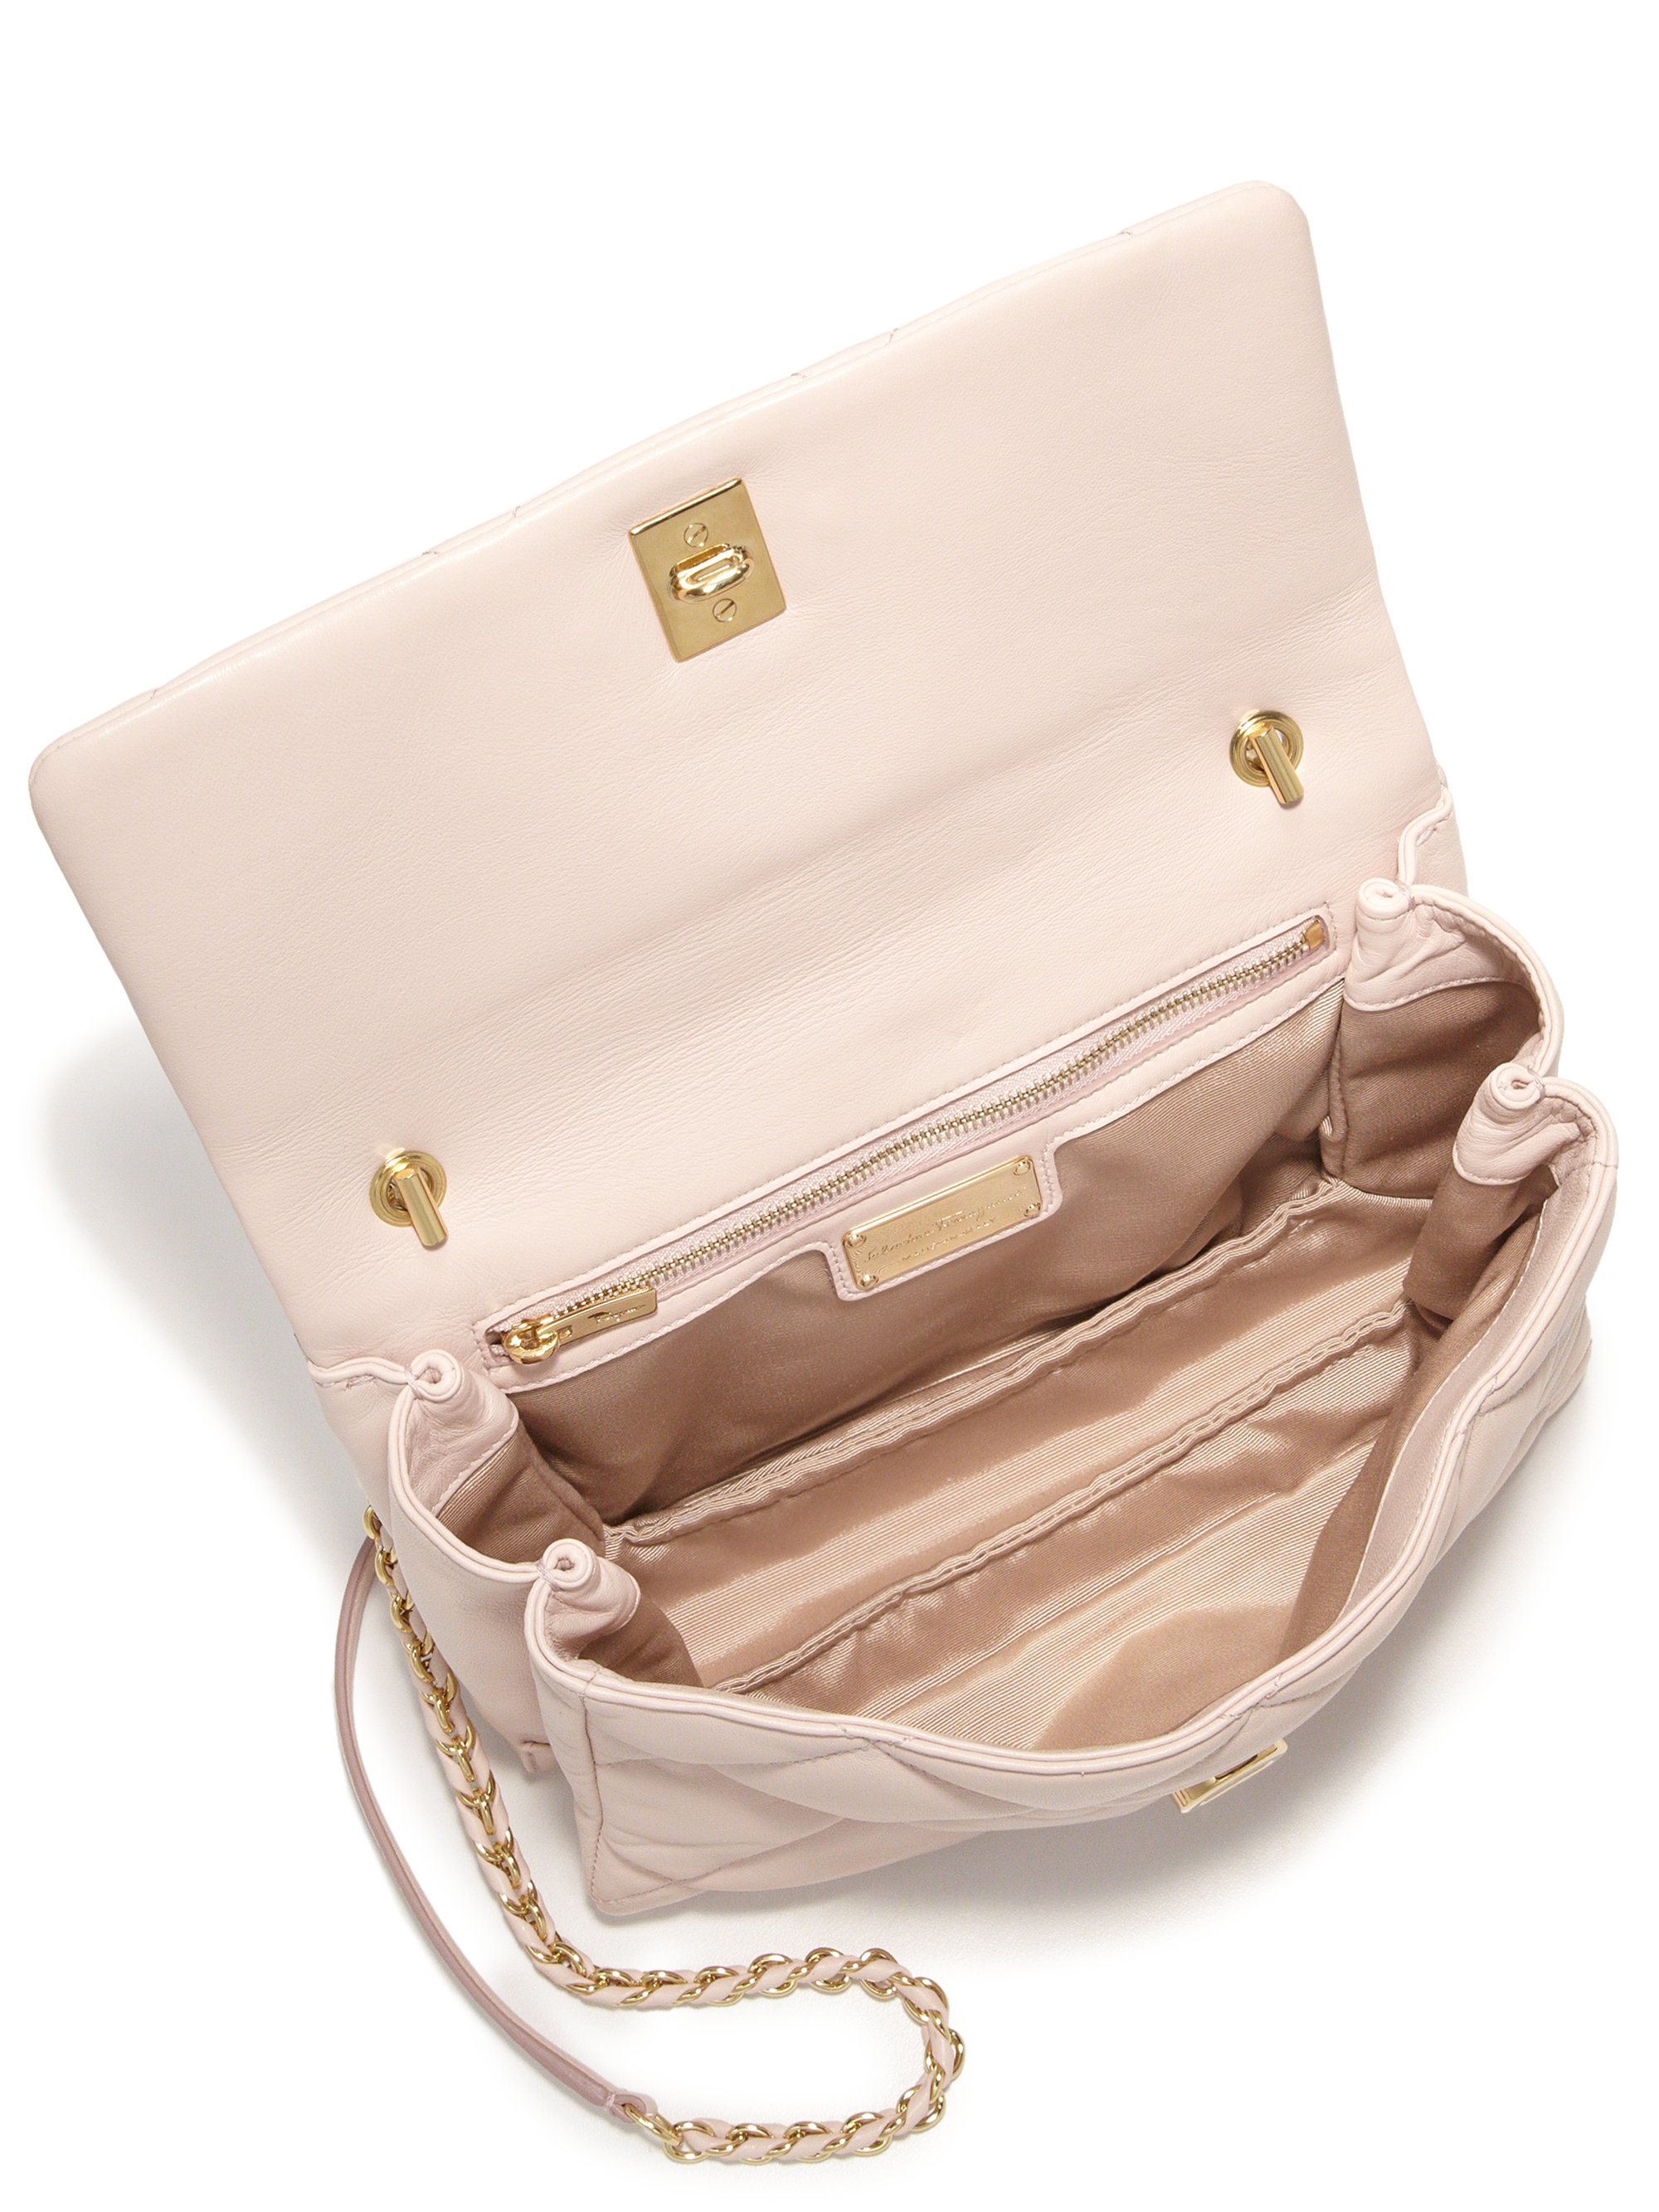 5194ddd2e98c Lyst - Ferragamo Gelly Quilted Nappa Leather Shoulder Bag in Natural